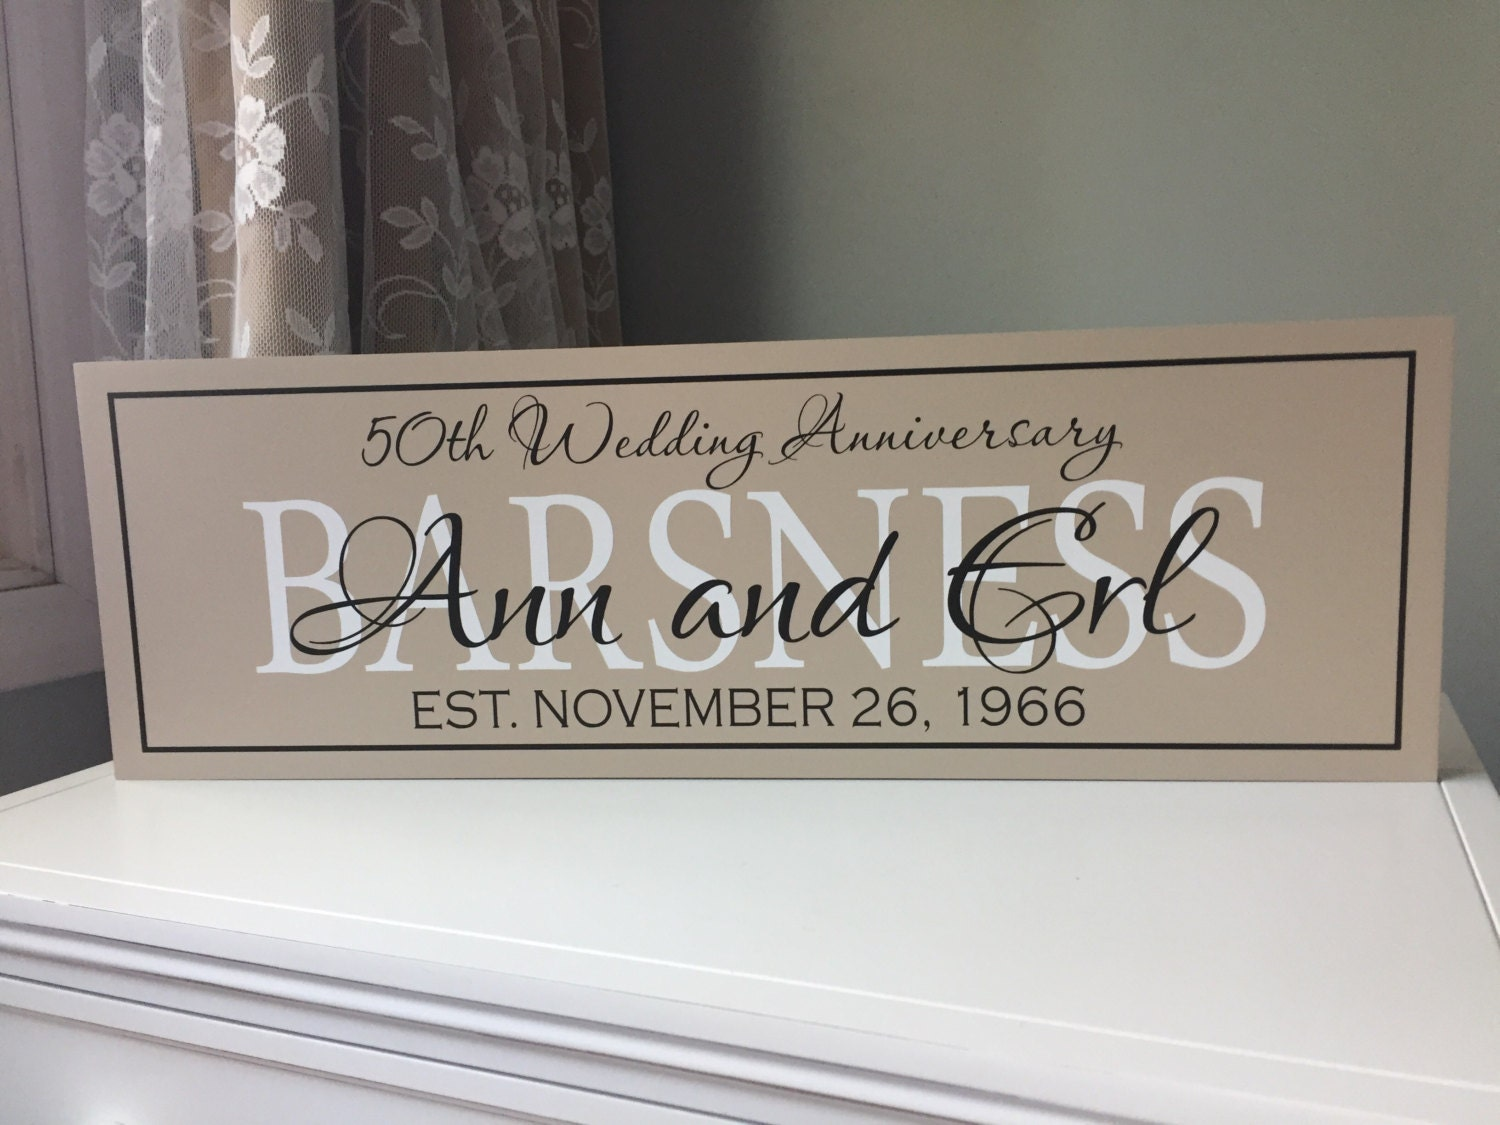 Fiftieth Wedding Anniversary Gifts: 50th Wedding Anniversary Gift Anniversary Gift For Parents